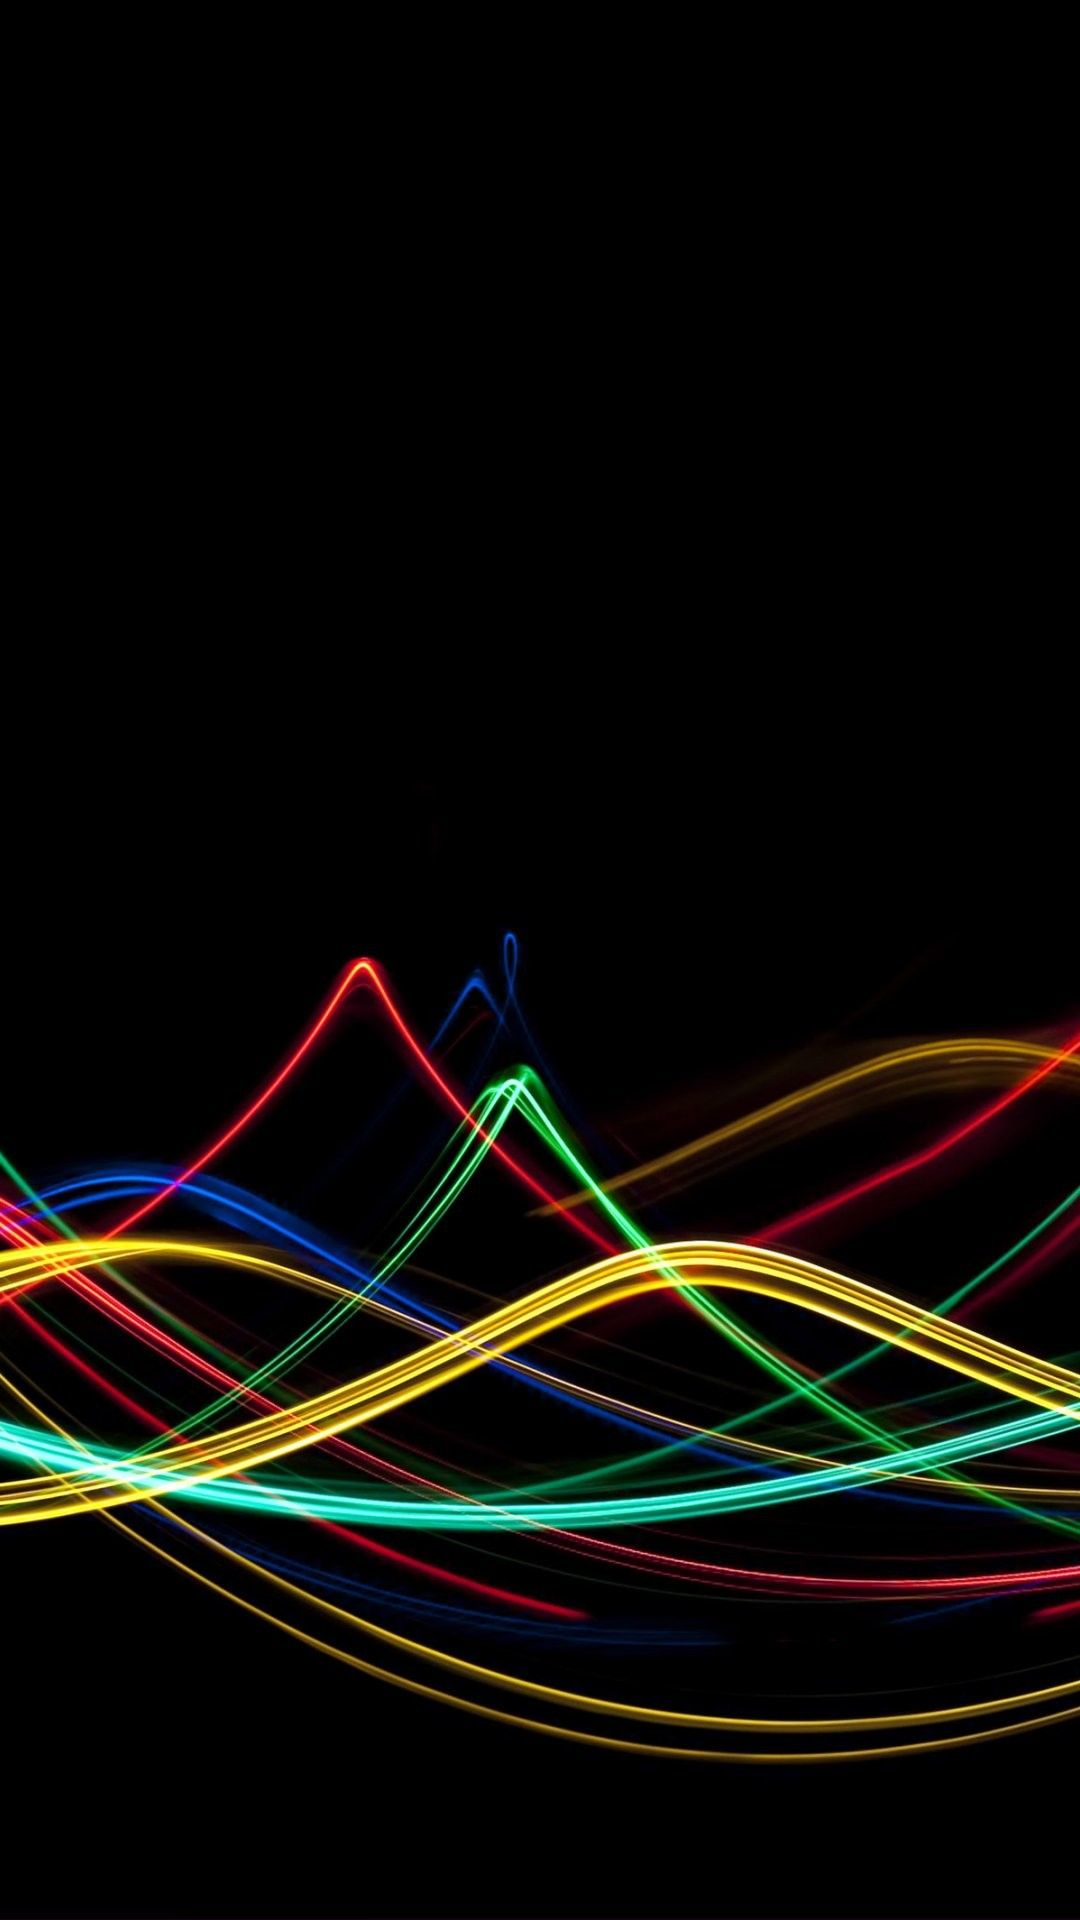 Neon Lights iPhone 6 Plus Wallpaper 24351 - Abstract ...